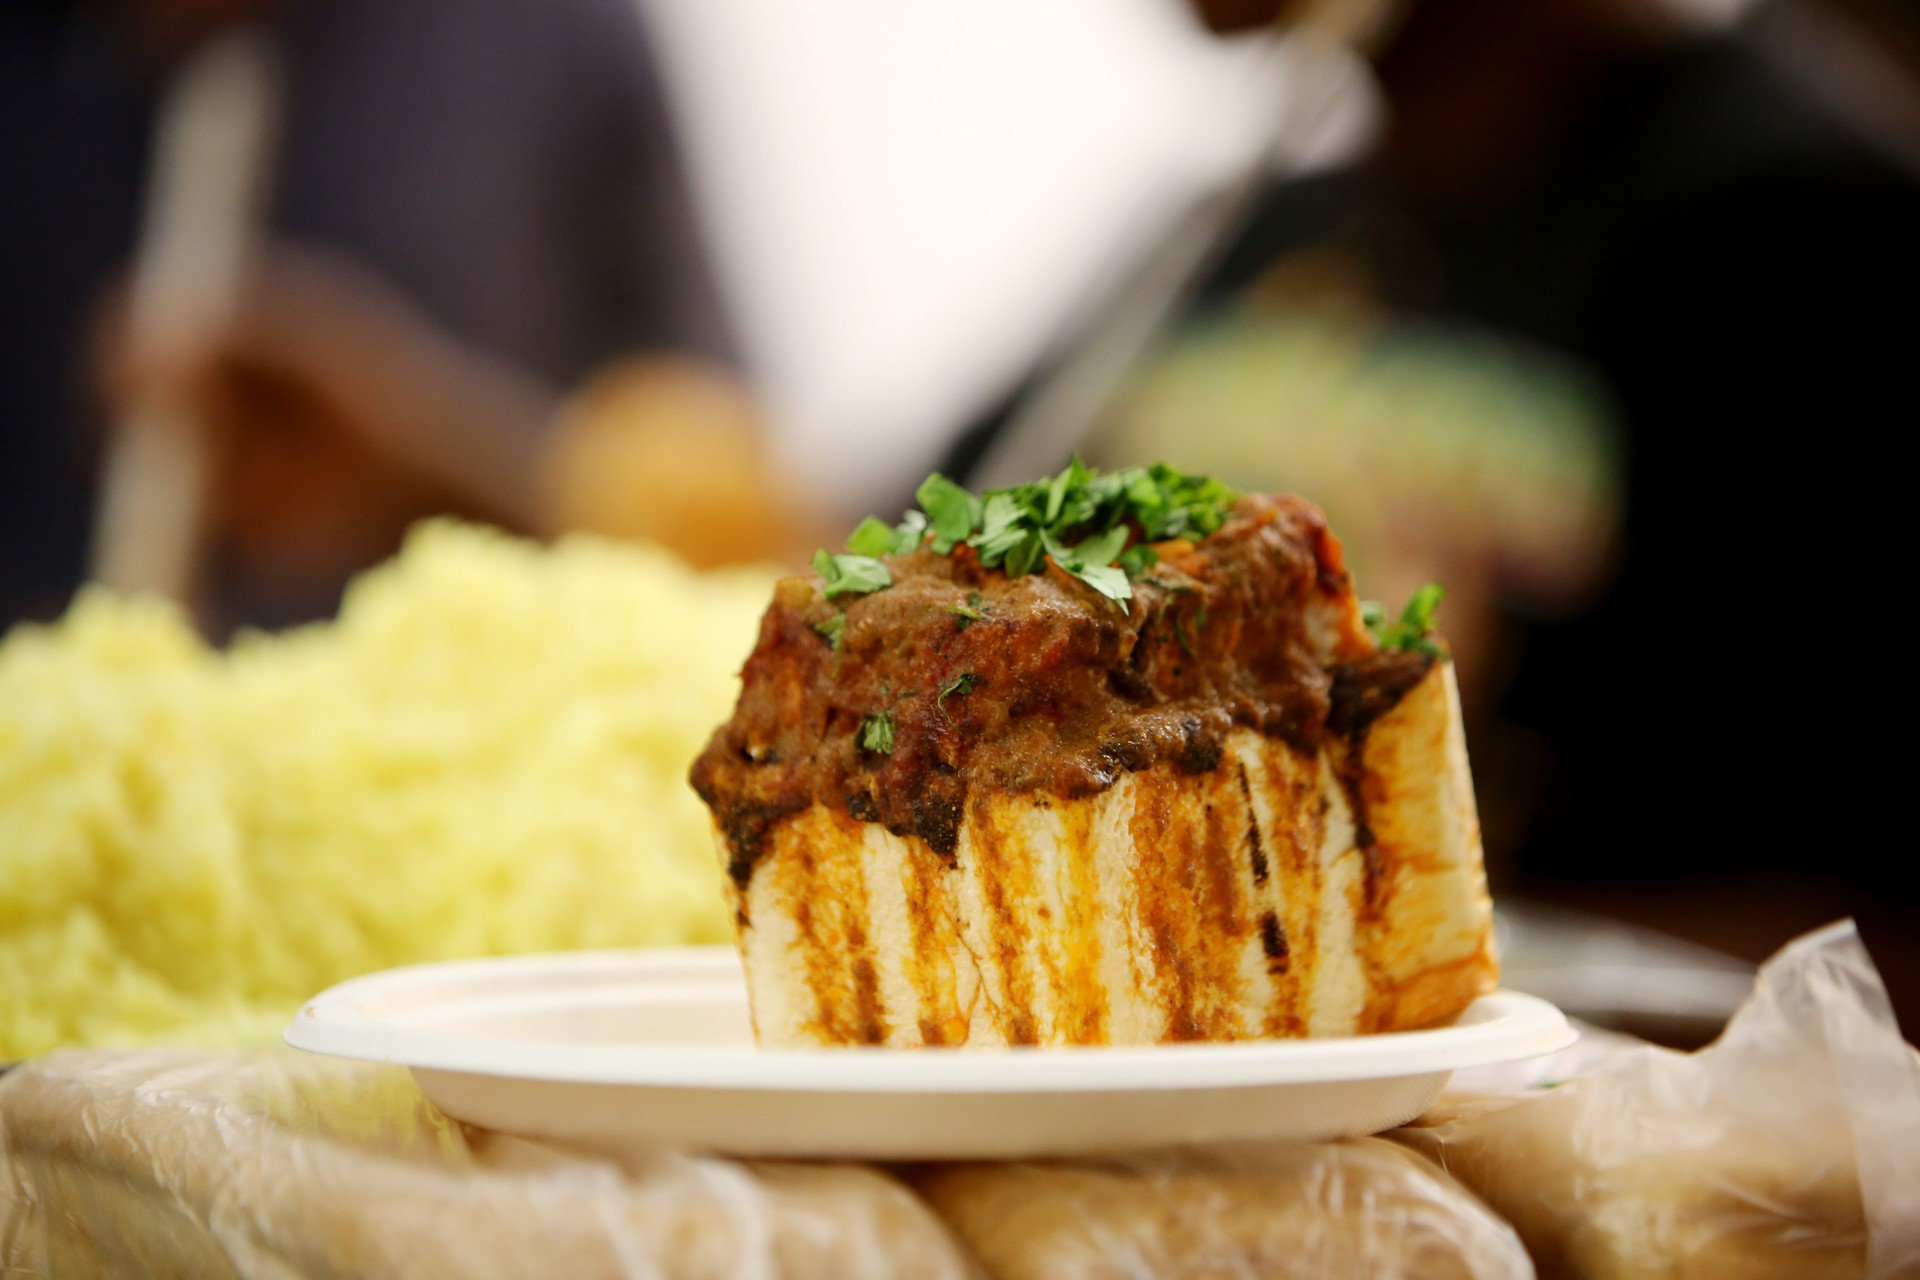 A bunny chow is a piece of hollowed out bread filled with curry